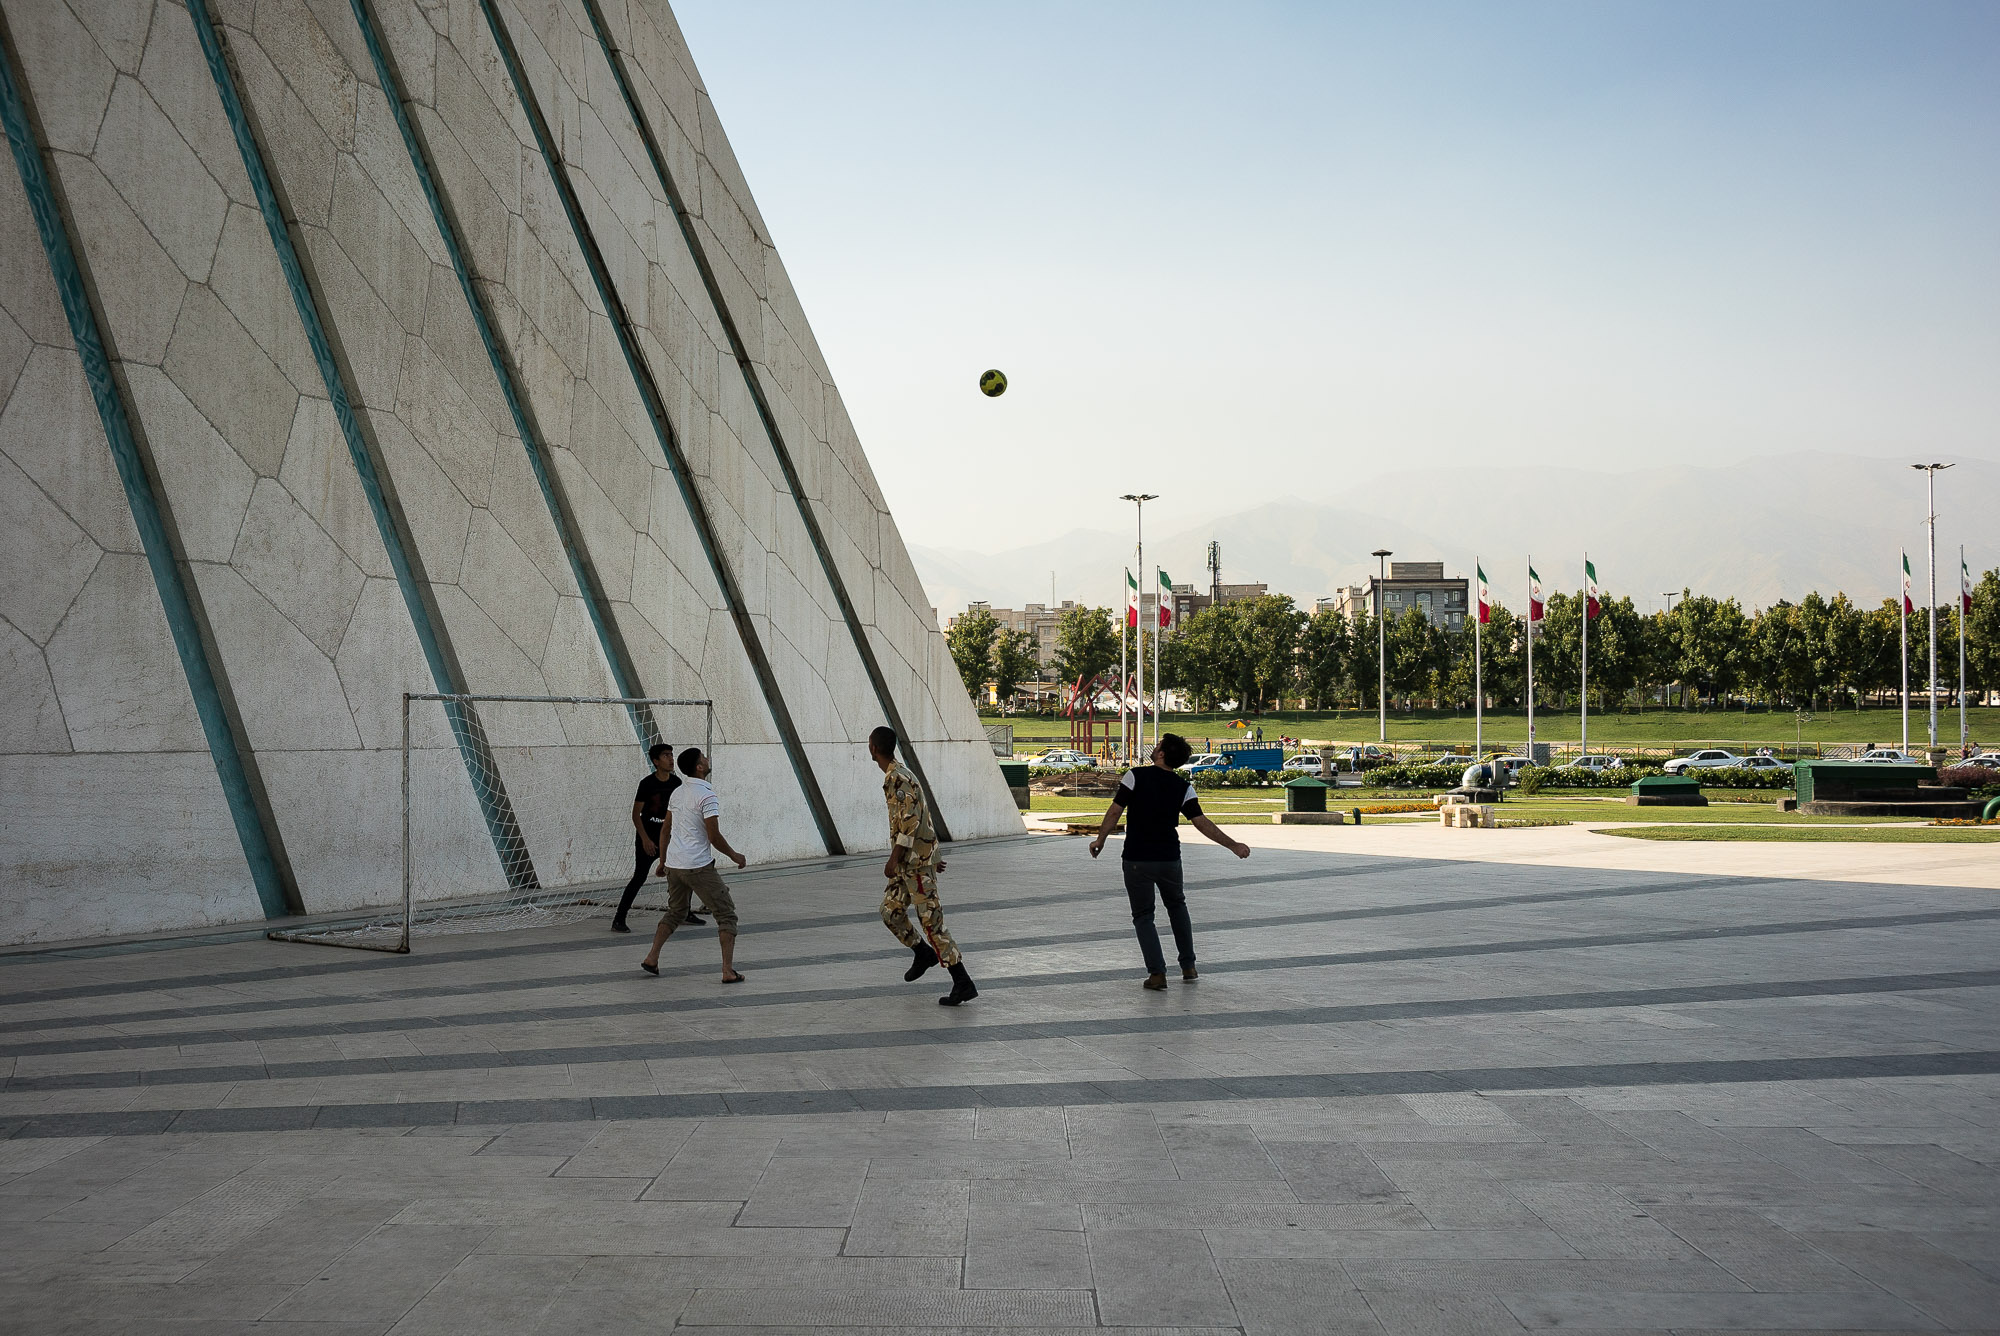 dudes playing football on Azari Square